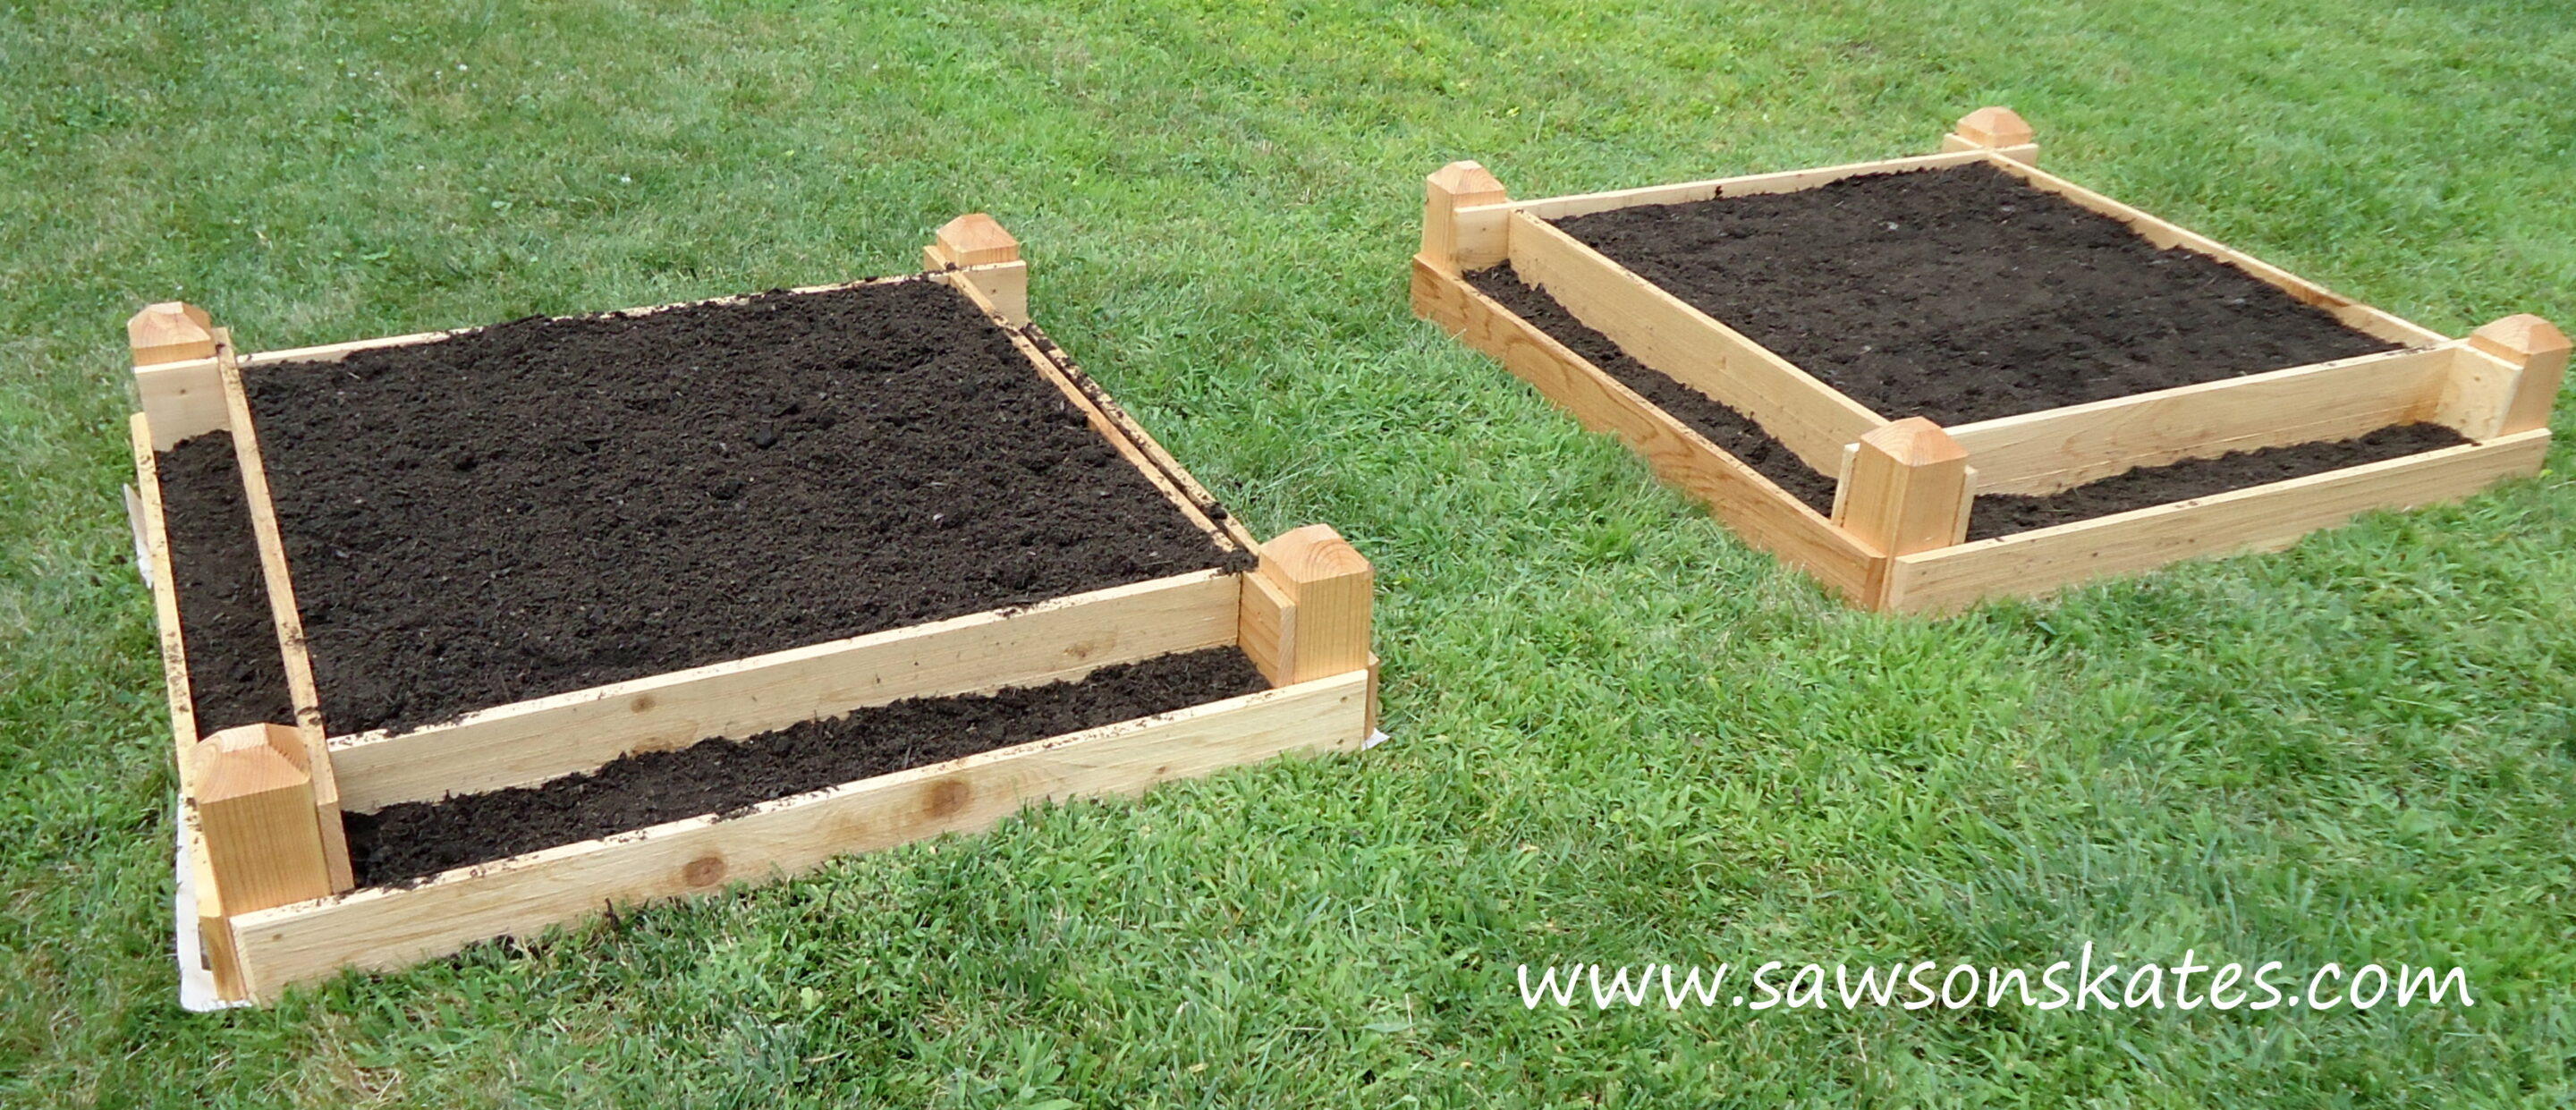 How to make a diy raised garden bed Raised garden beds